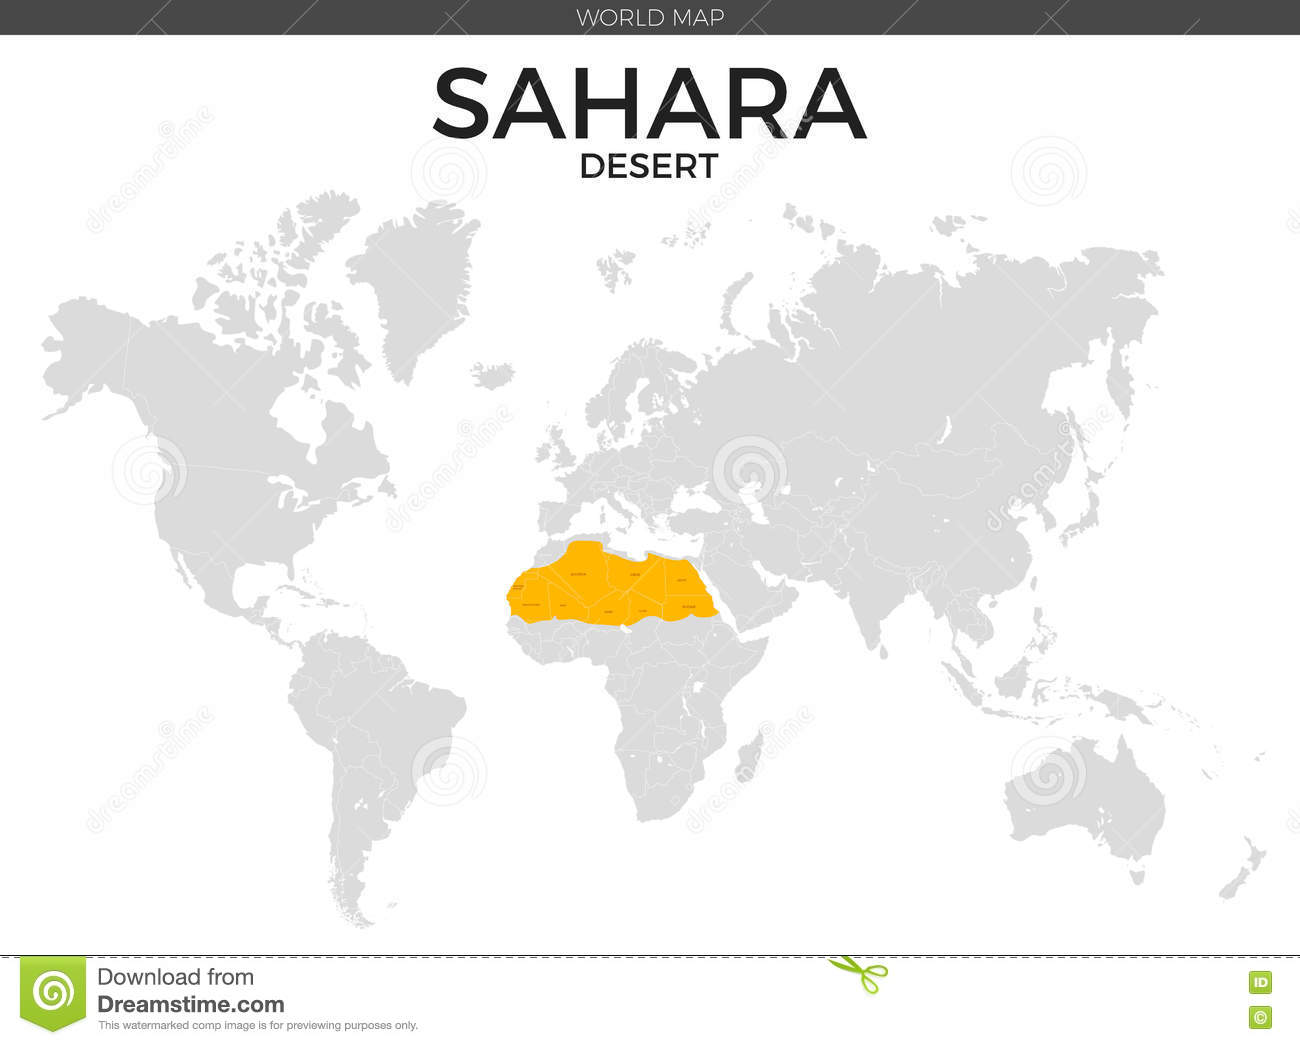 Sahara Desert Location Map Stock Vector - Image: 73680433